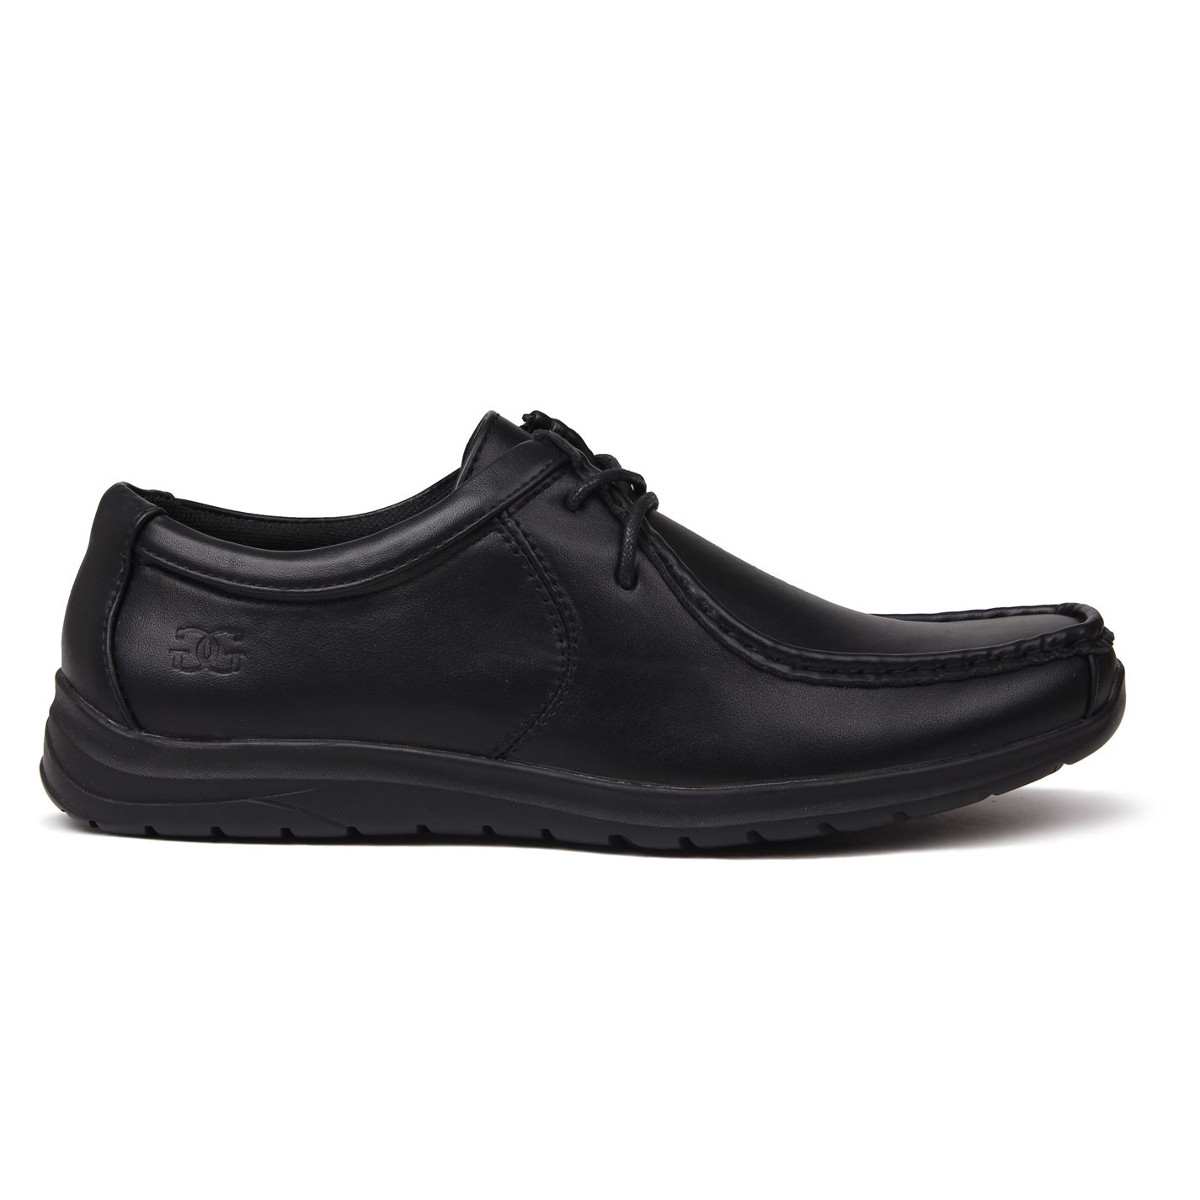 Giorgio Men's Bexley Lace-Up Casual Shoes - Black, 13